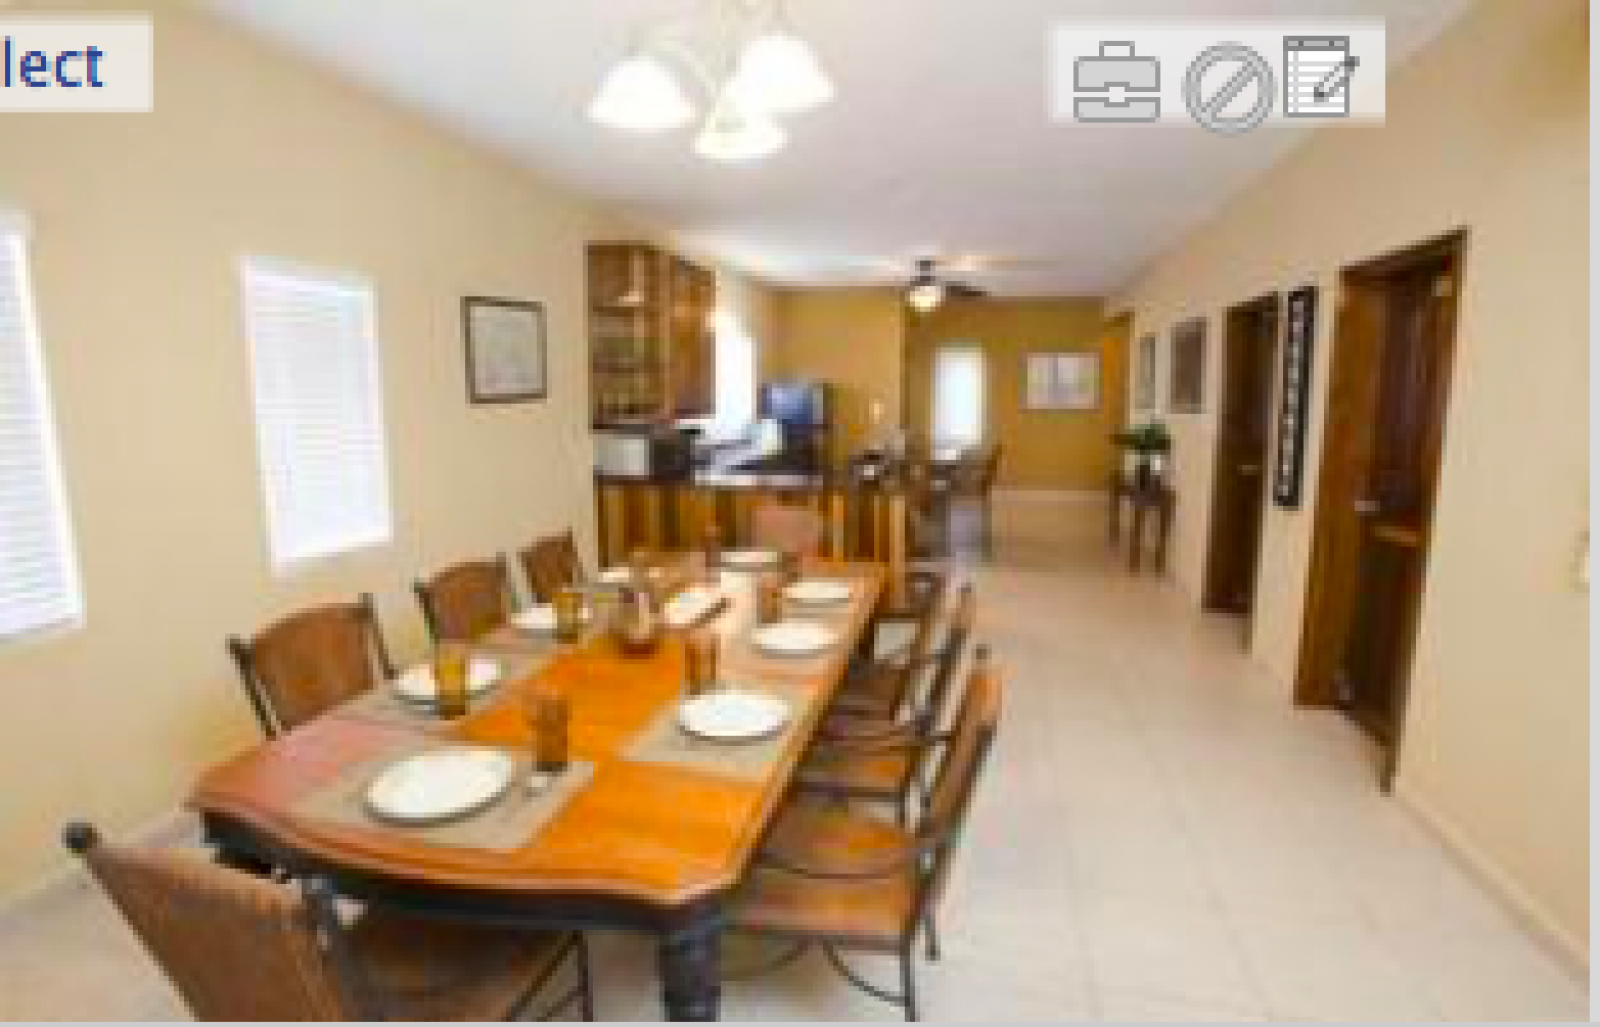 Large dining area perfect for indoor entertaining.